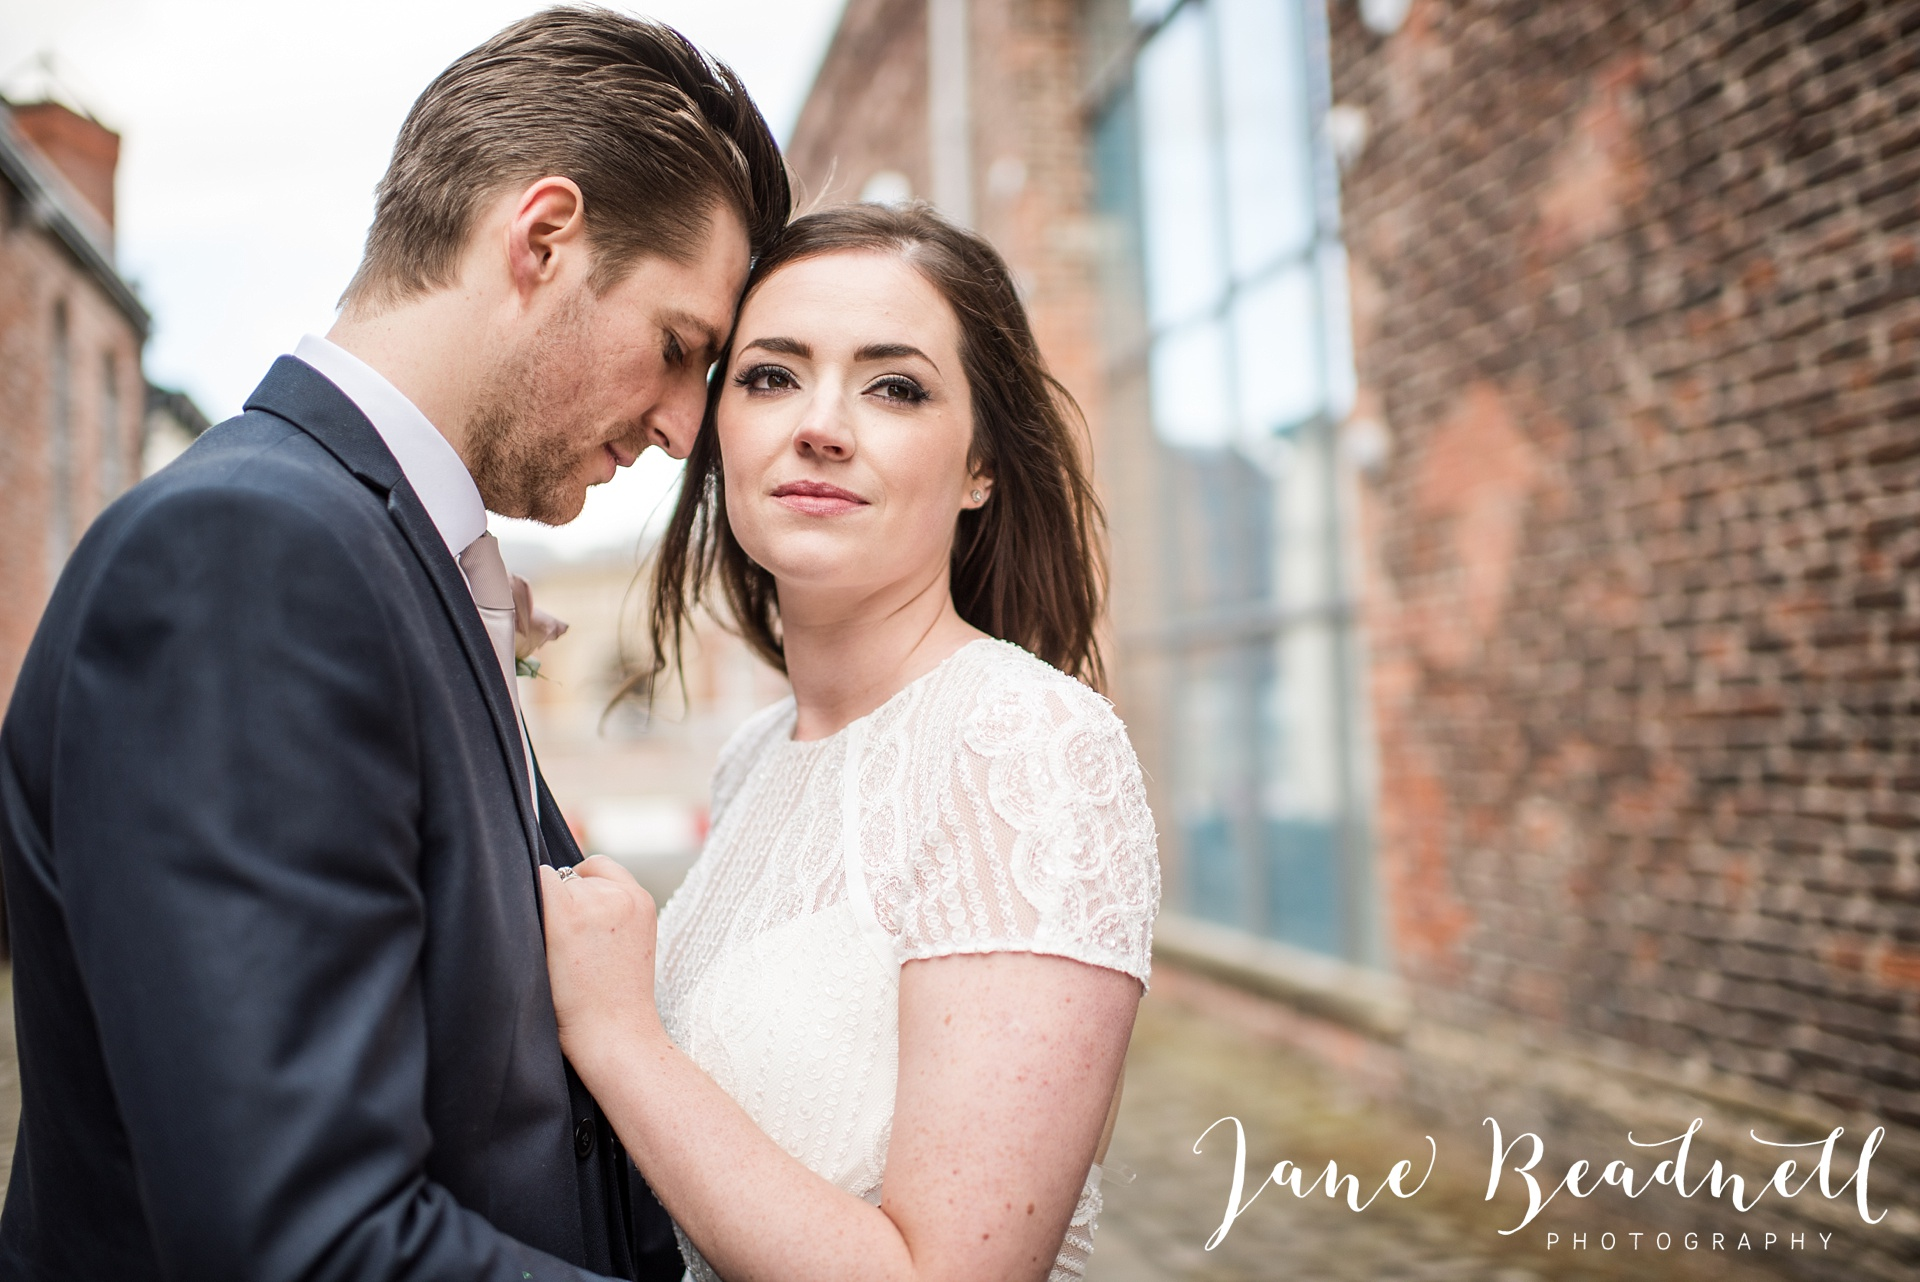 Wedding photography Cross Keys Leeds Wedding Jane Beadnell Photography_0105